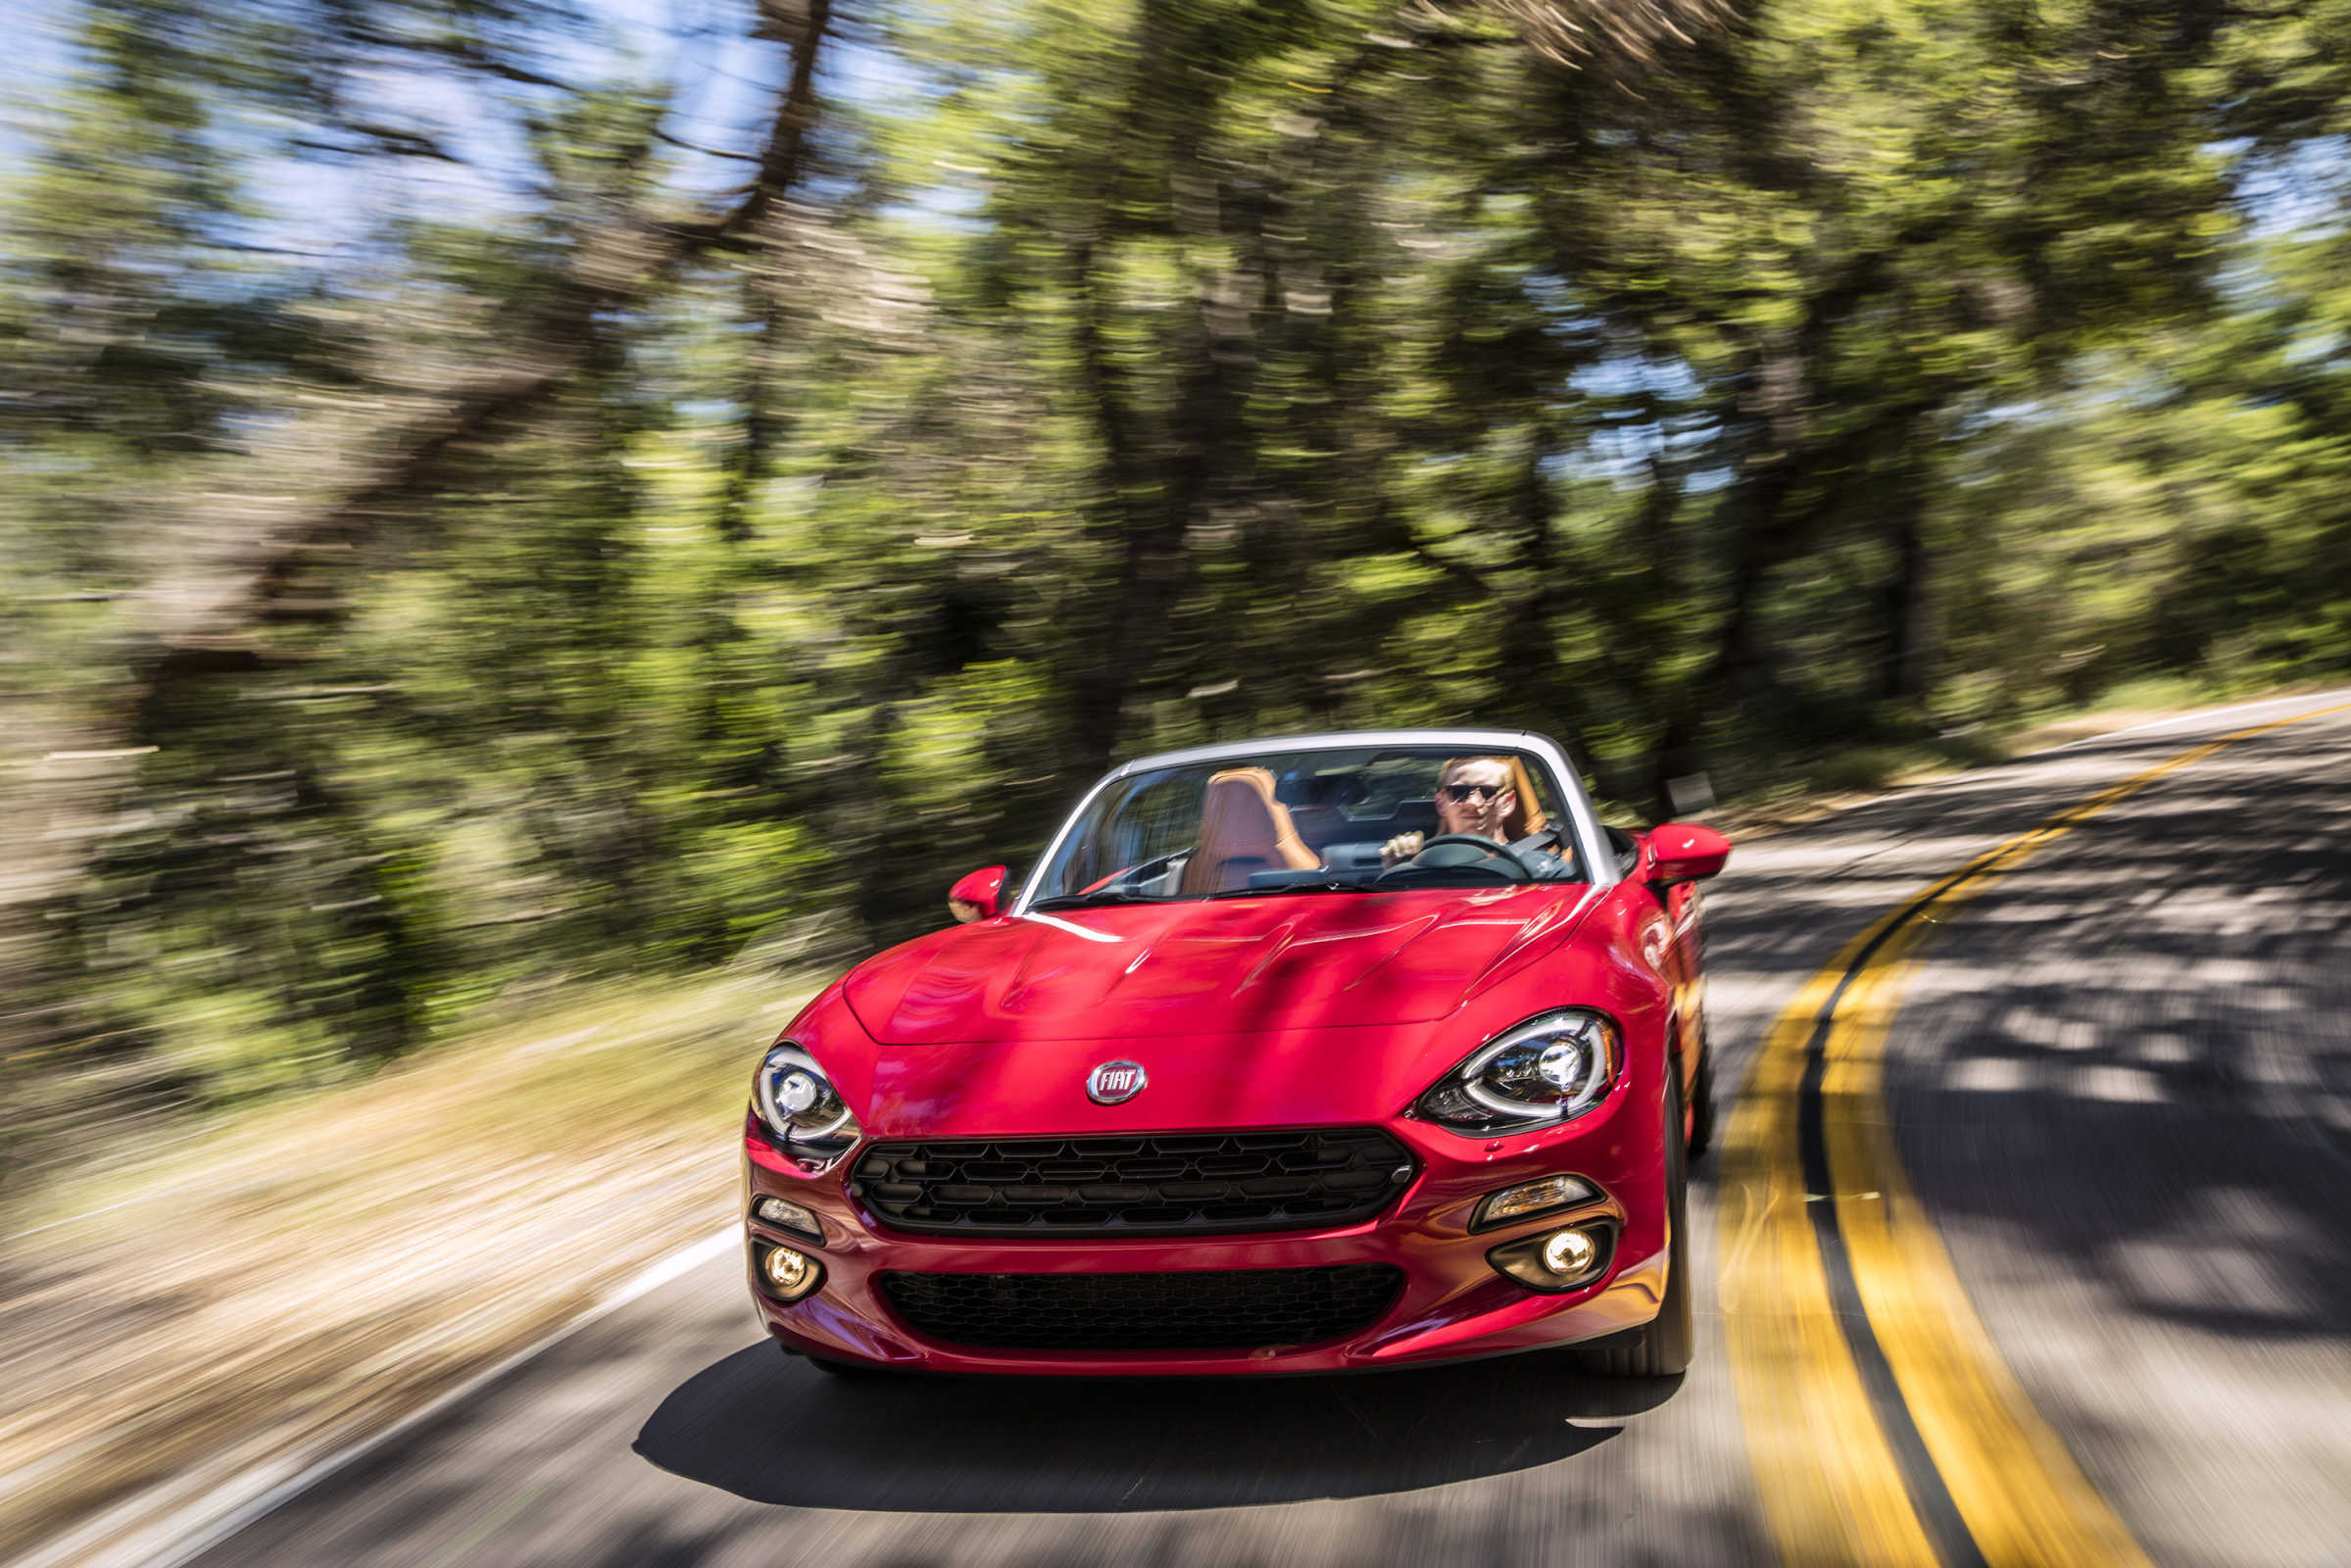 The 2017 Fiat 124 Spider Lusso shares a lot of traits of the Mazda MX-5 Miata, but supercharges them.